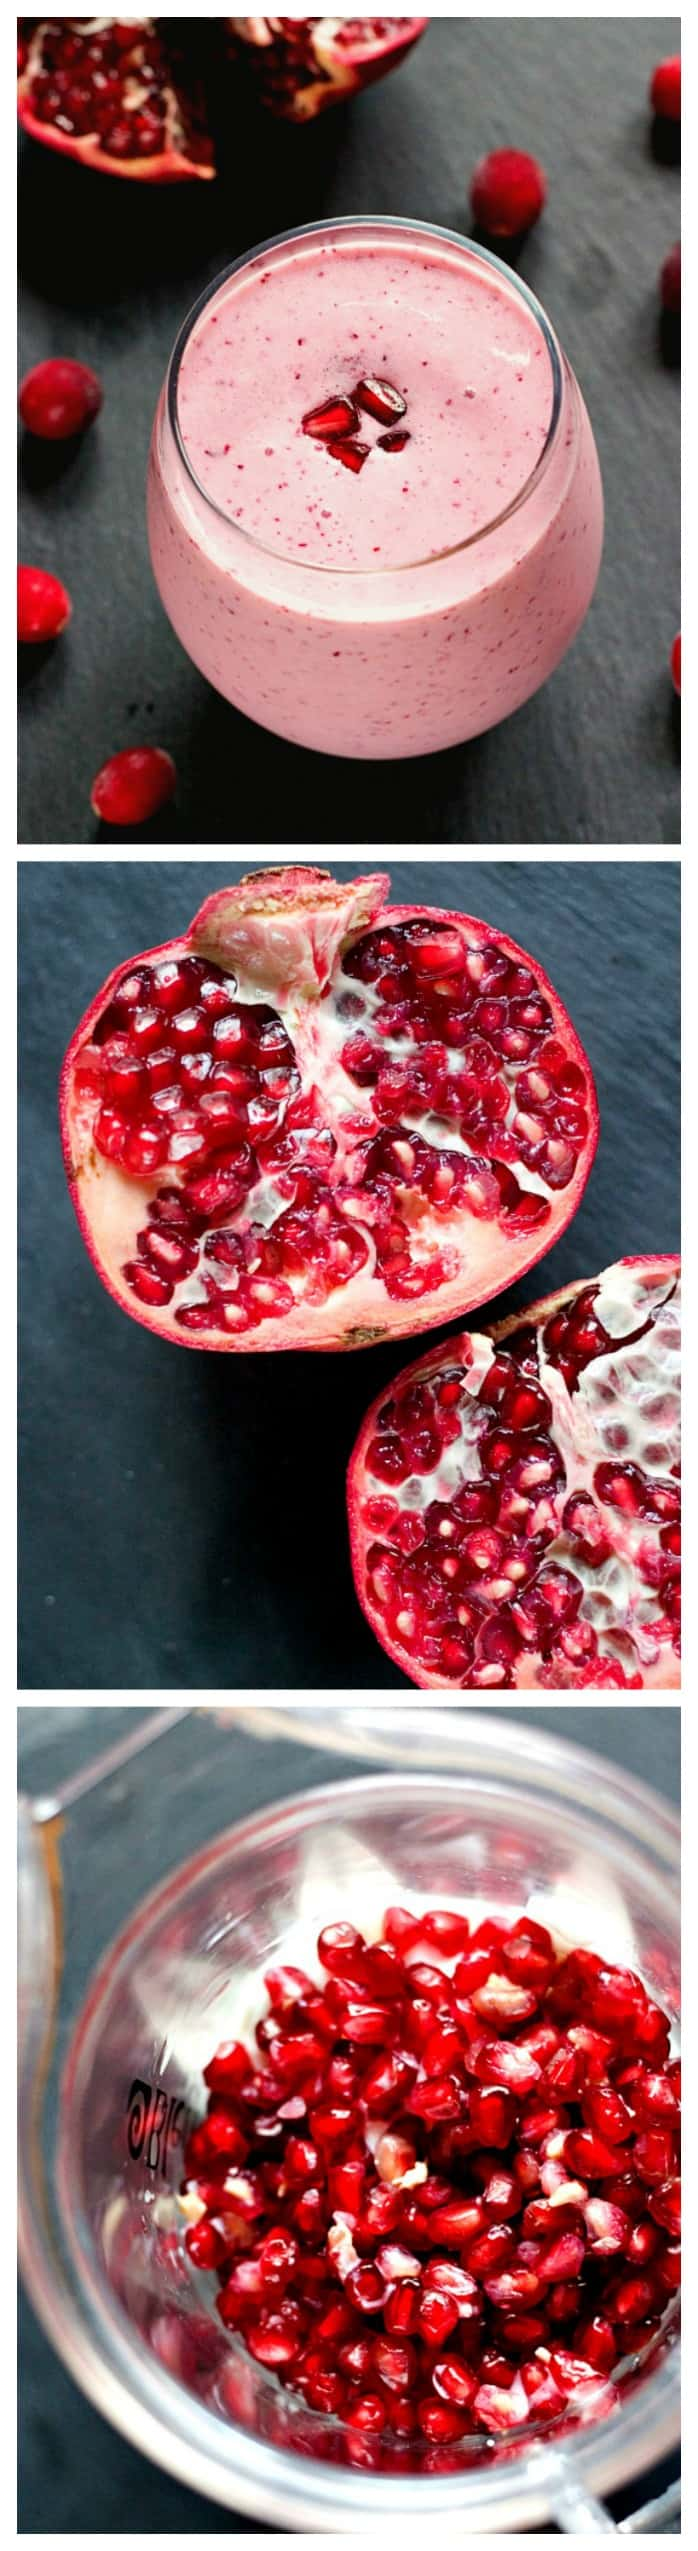 Cranberry Pomegranate Smoothie made from fresh ingredients and good for you Cranberry Pomegranate Smoothie